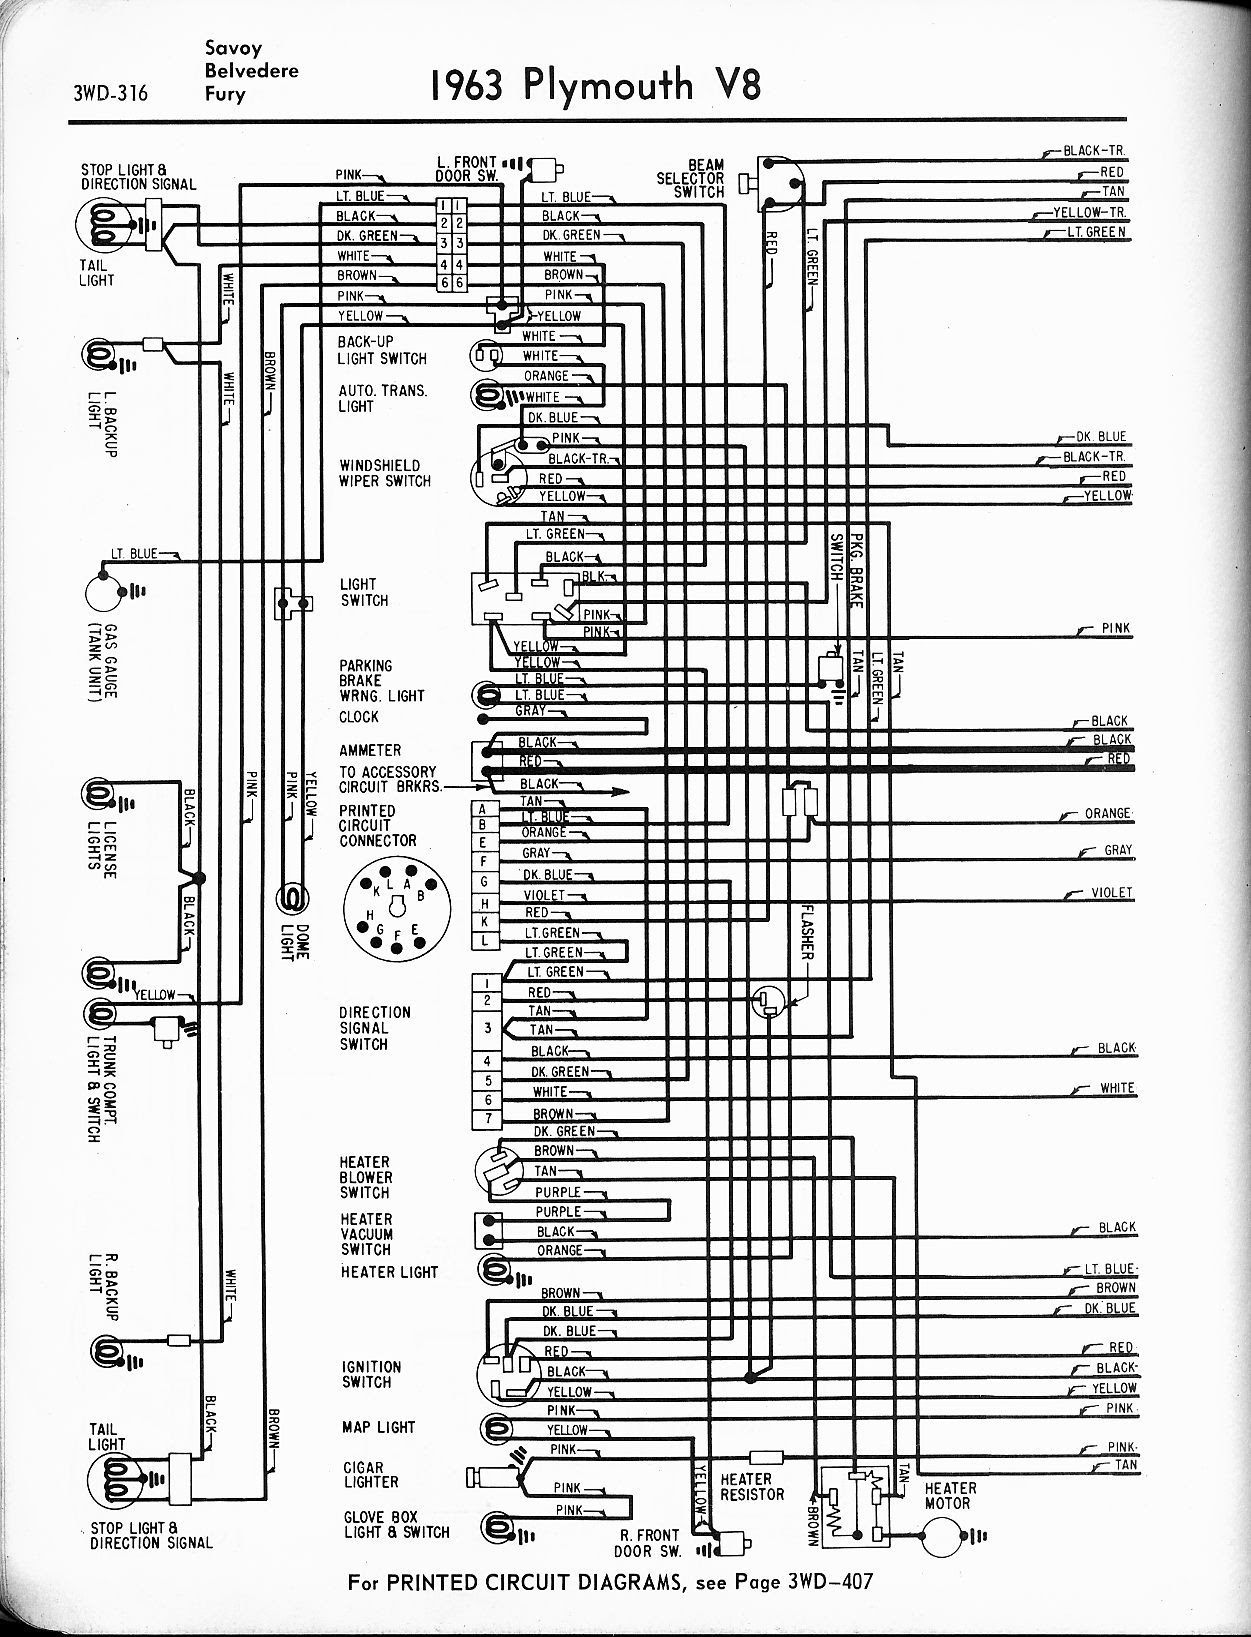 Dd30e6 1955 Plymouth Belvedere Wiring Diagram Wiring Library